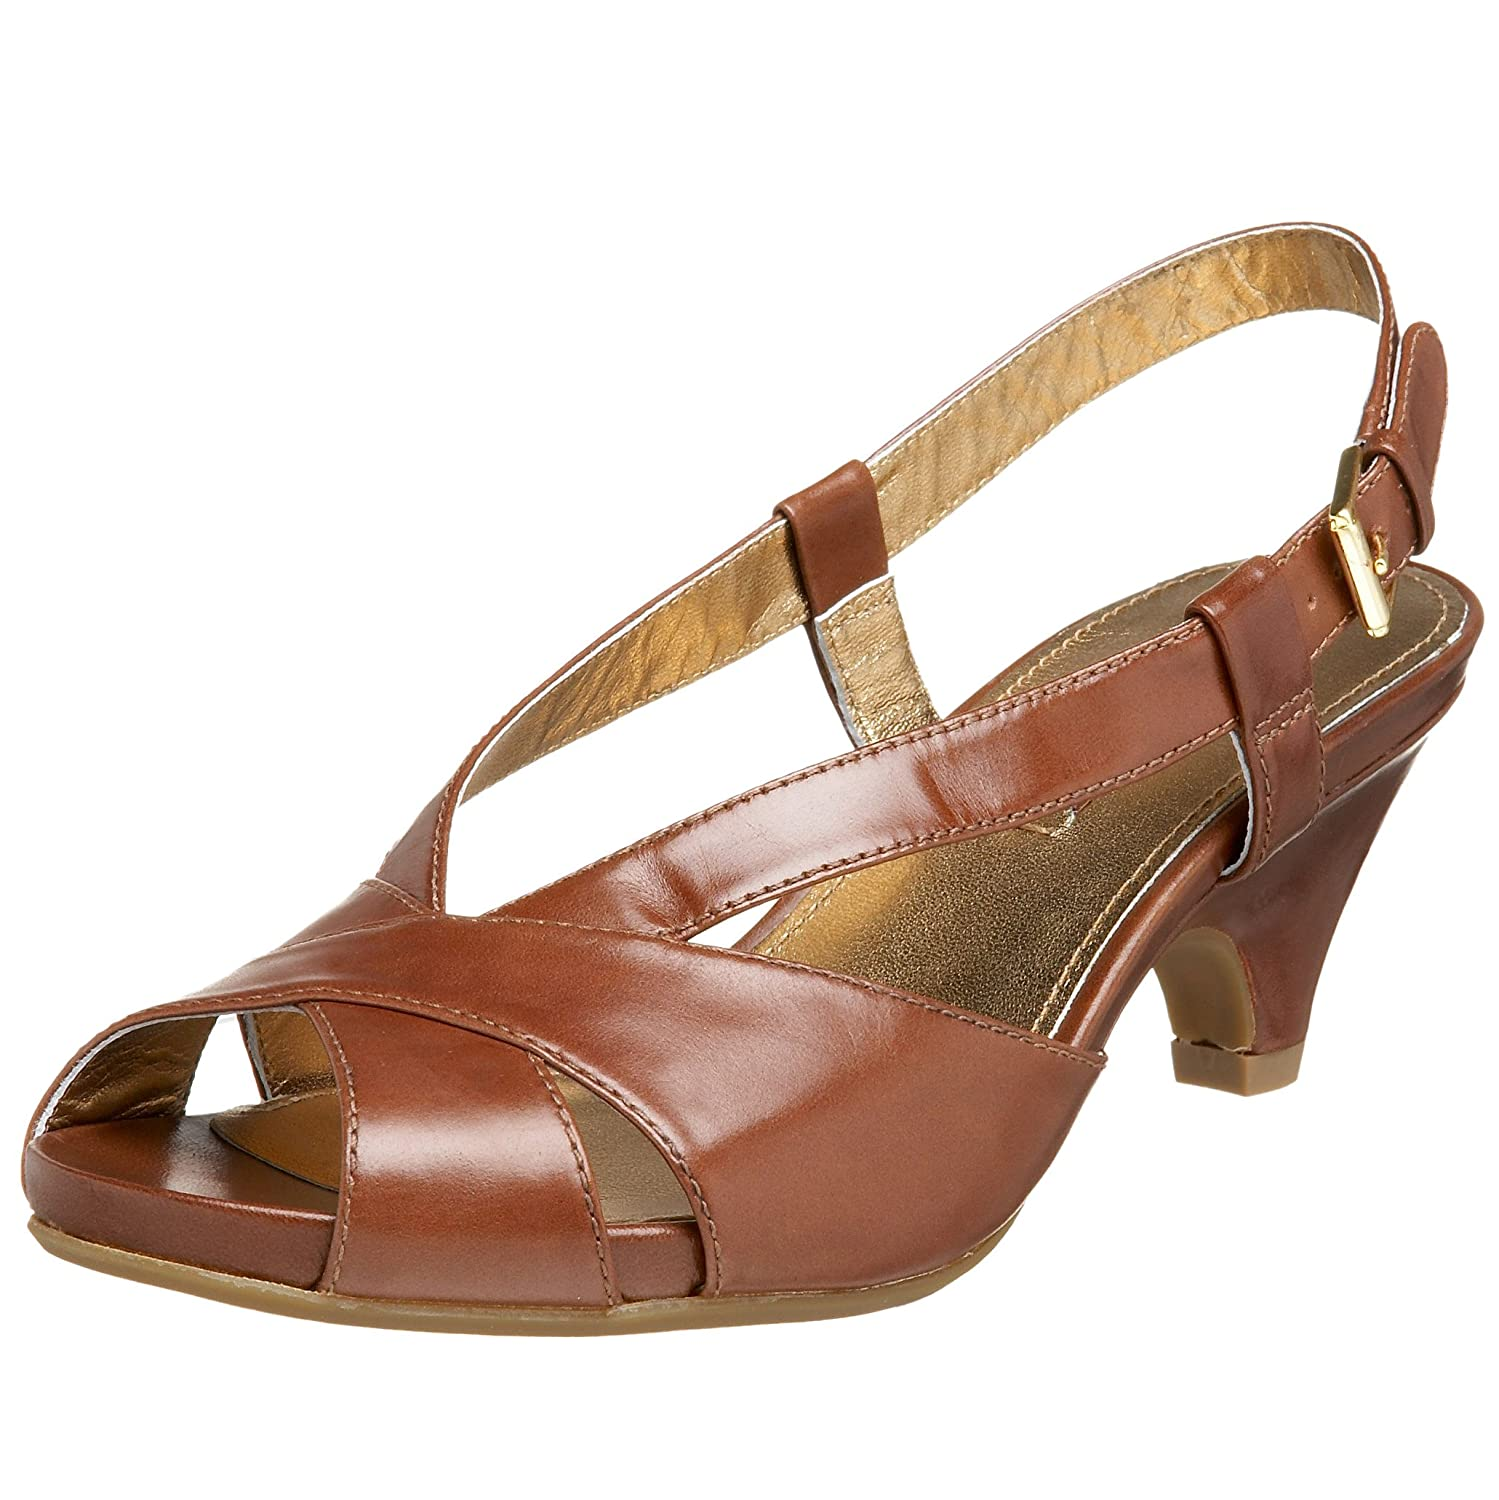 ECCO Women's Gracias Platform Peep Toe - Free Overnight Shipping & Return Shipping: Endless.com :  platform mid-heel retro heels